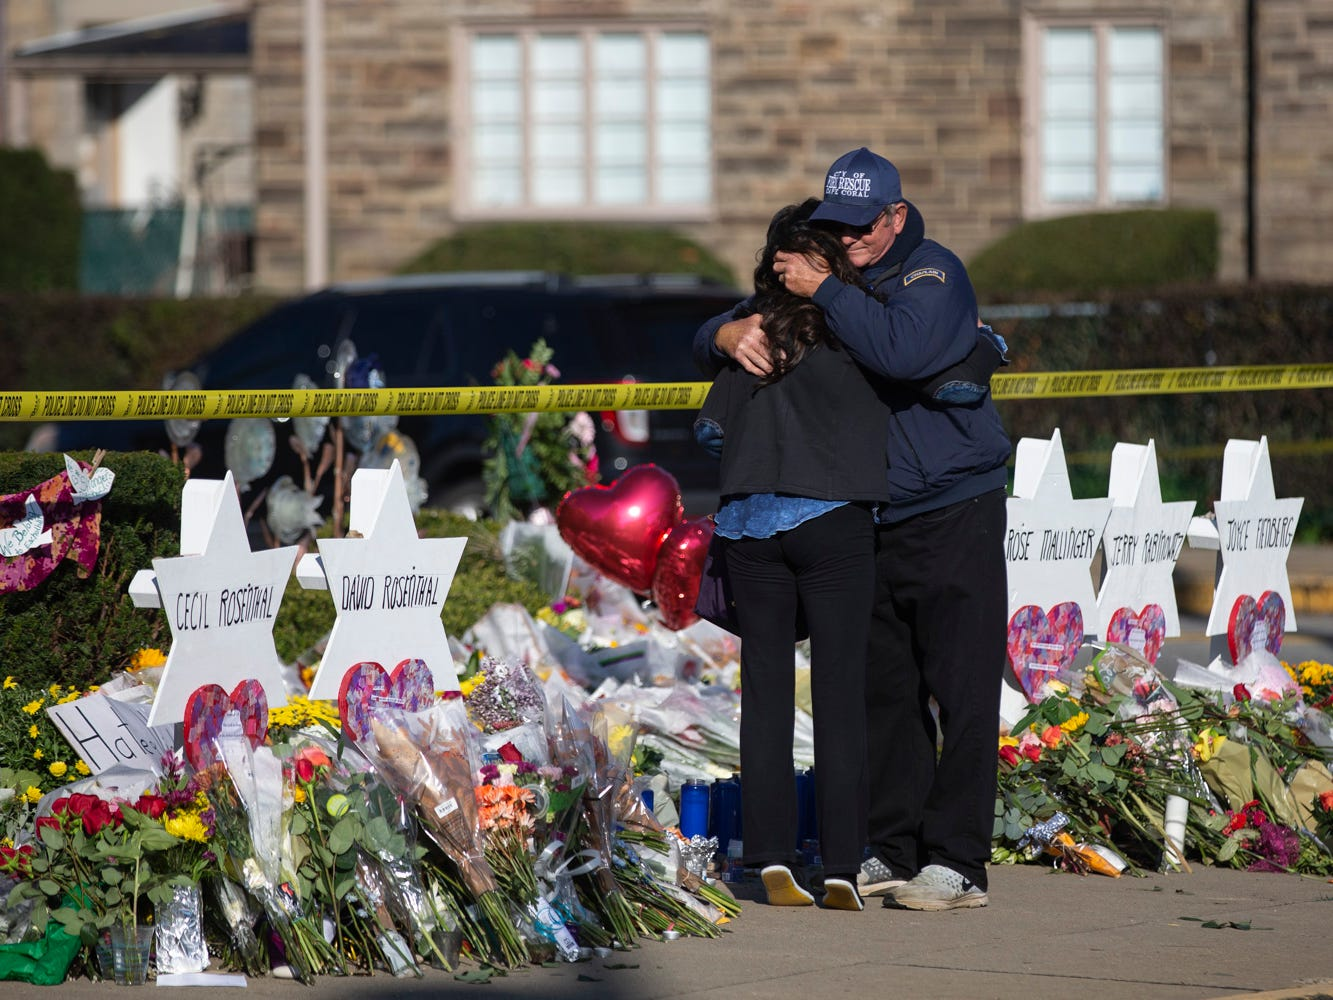 "Florida native and chaplain Bob Ossler, right, hugs Julianne Statnick as she visits a tribute to shooting victims along Shady Avenue in Pittsburgh, Pennsylvania on Tuesday morning. ""I grew up here,"" Statnick said. ""I was in Ireland when this happened so now I'm just here spreading love."" Oct. 30, 2018 (Via OlyDrop)"